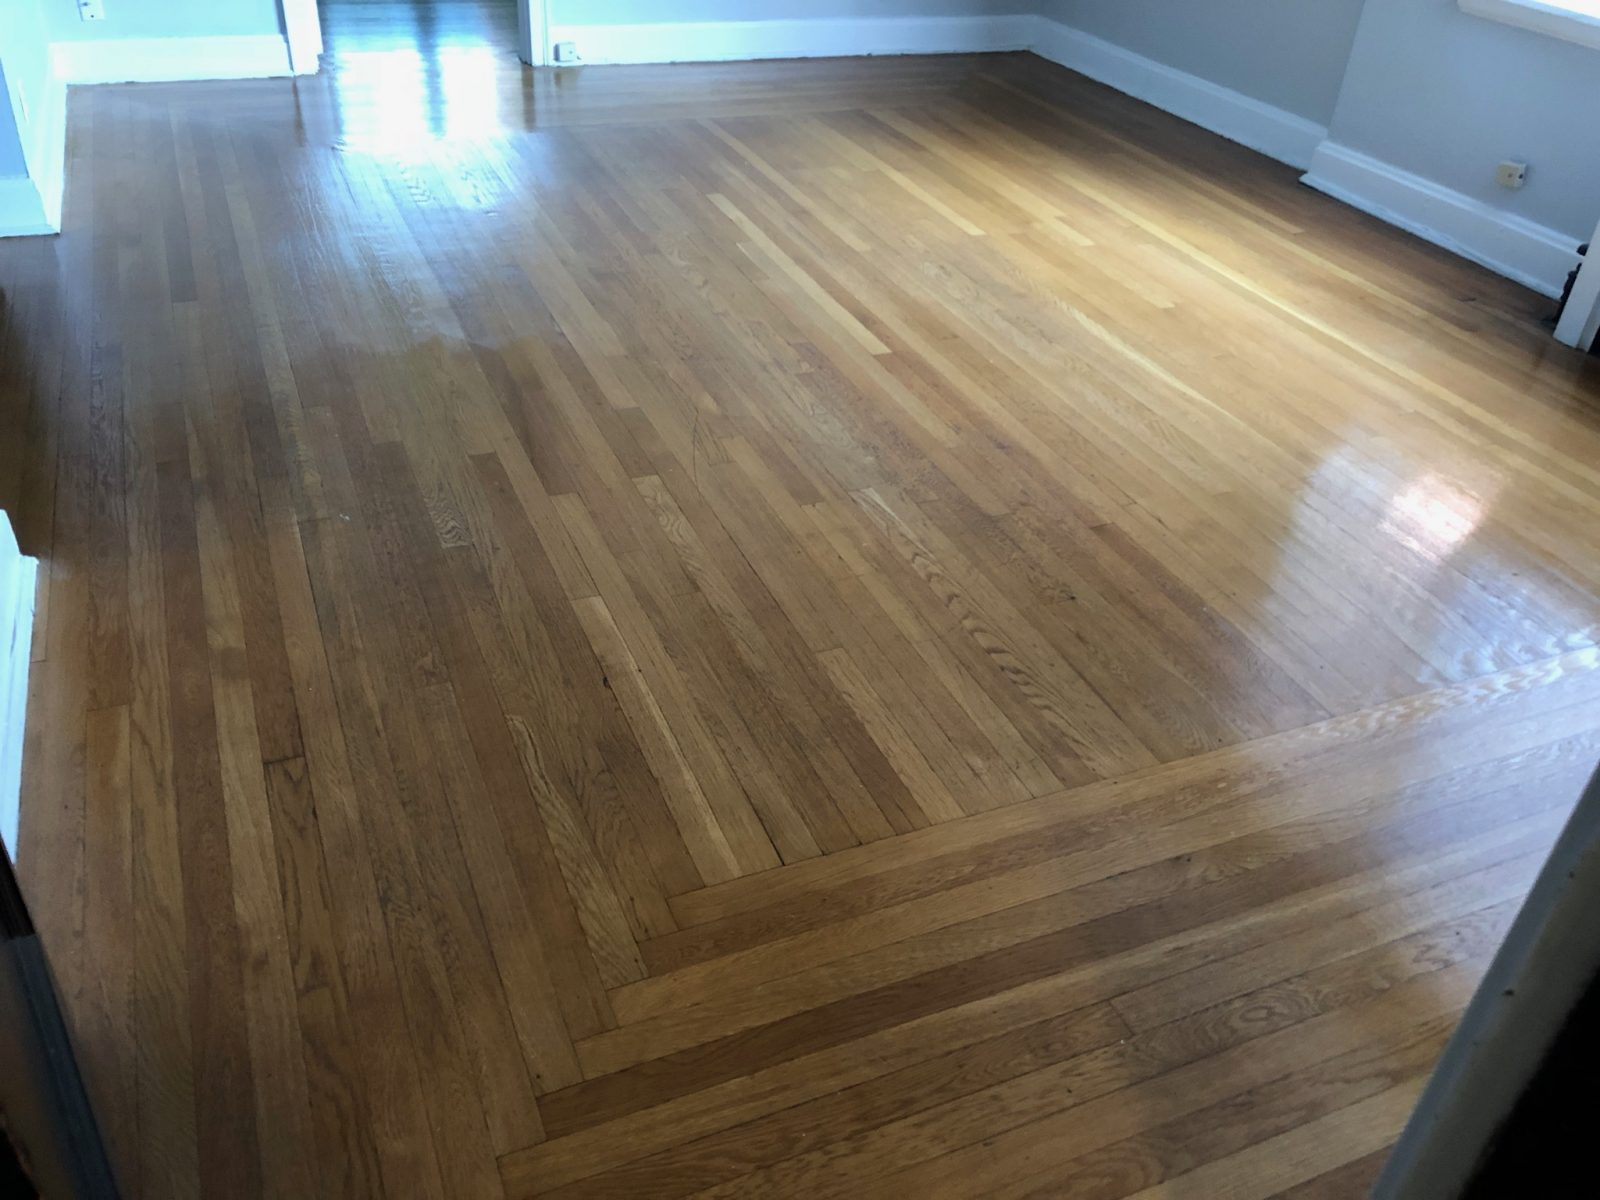 Professional Hardwood Floor Cleaning Maineville Ohio by Howards Cleaning Service